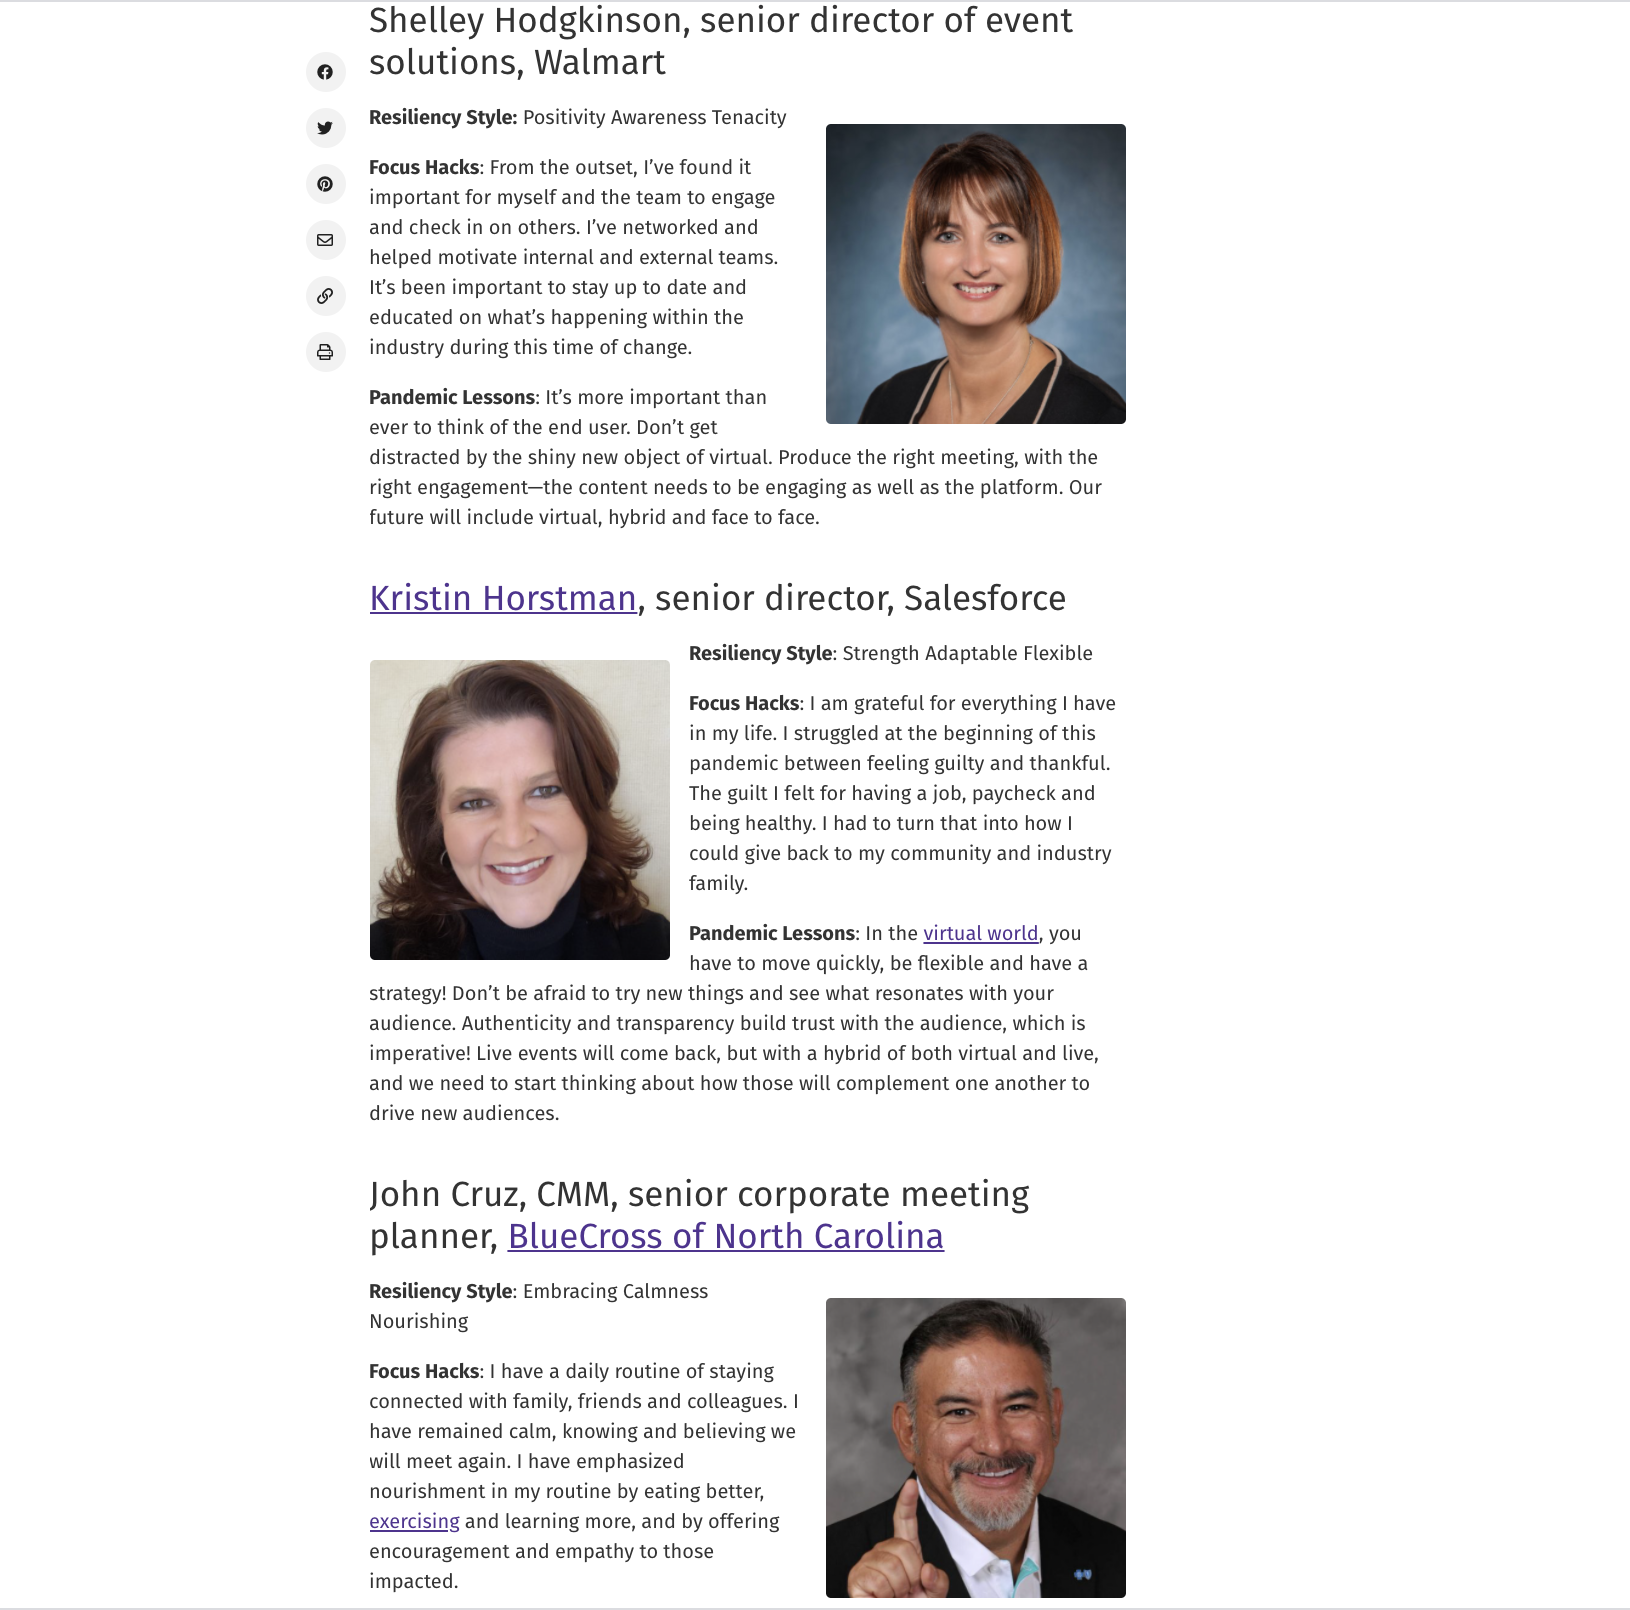 See the 2020 Planners of the Year at smartmeetingscom